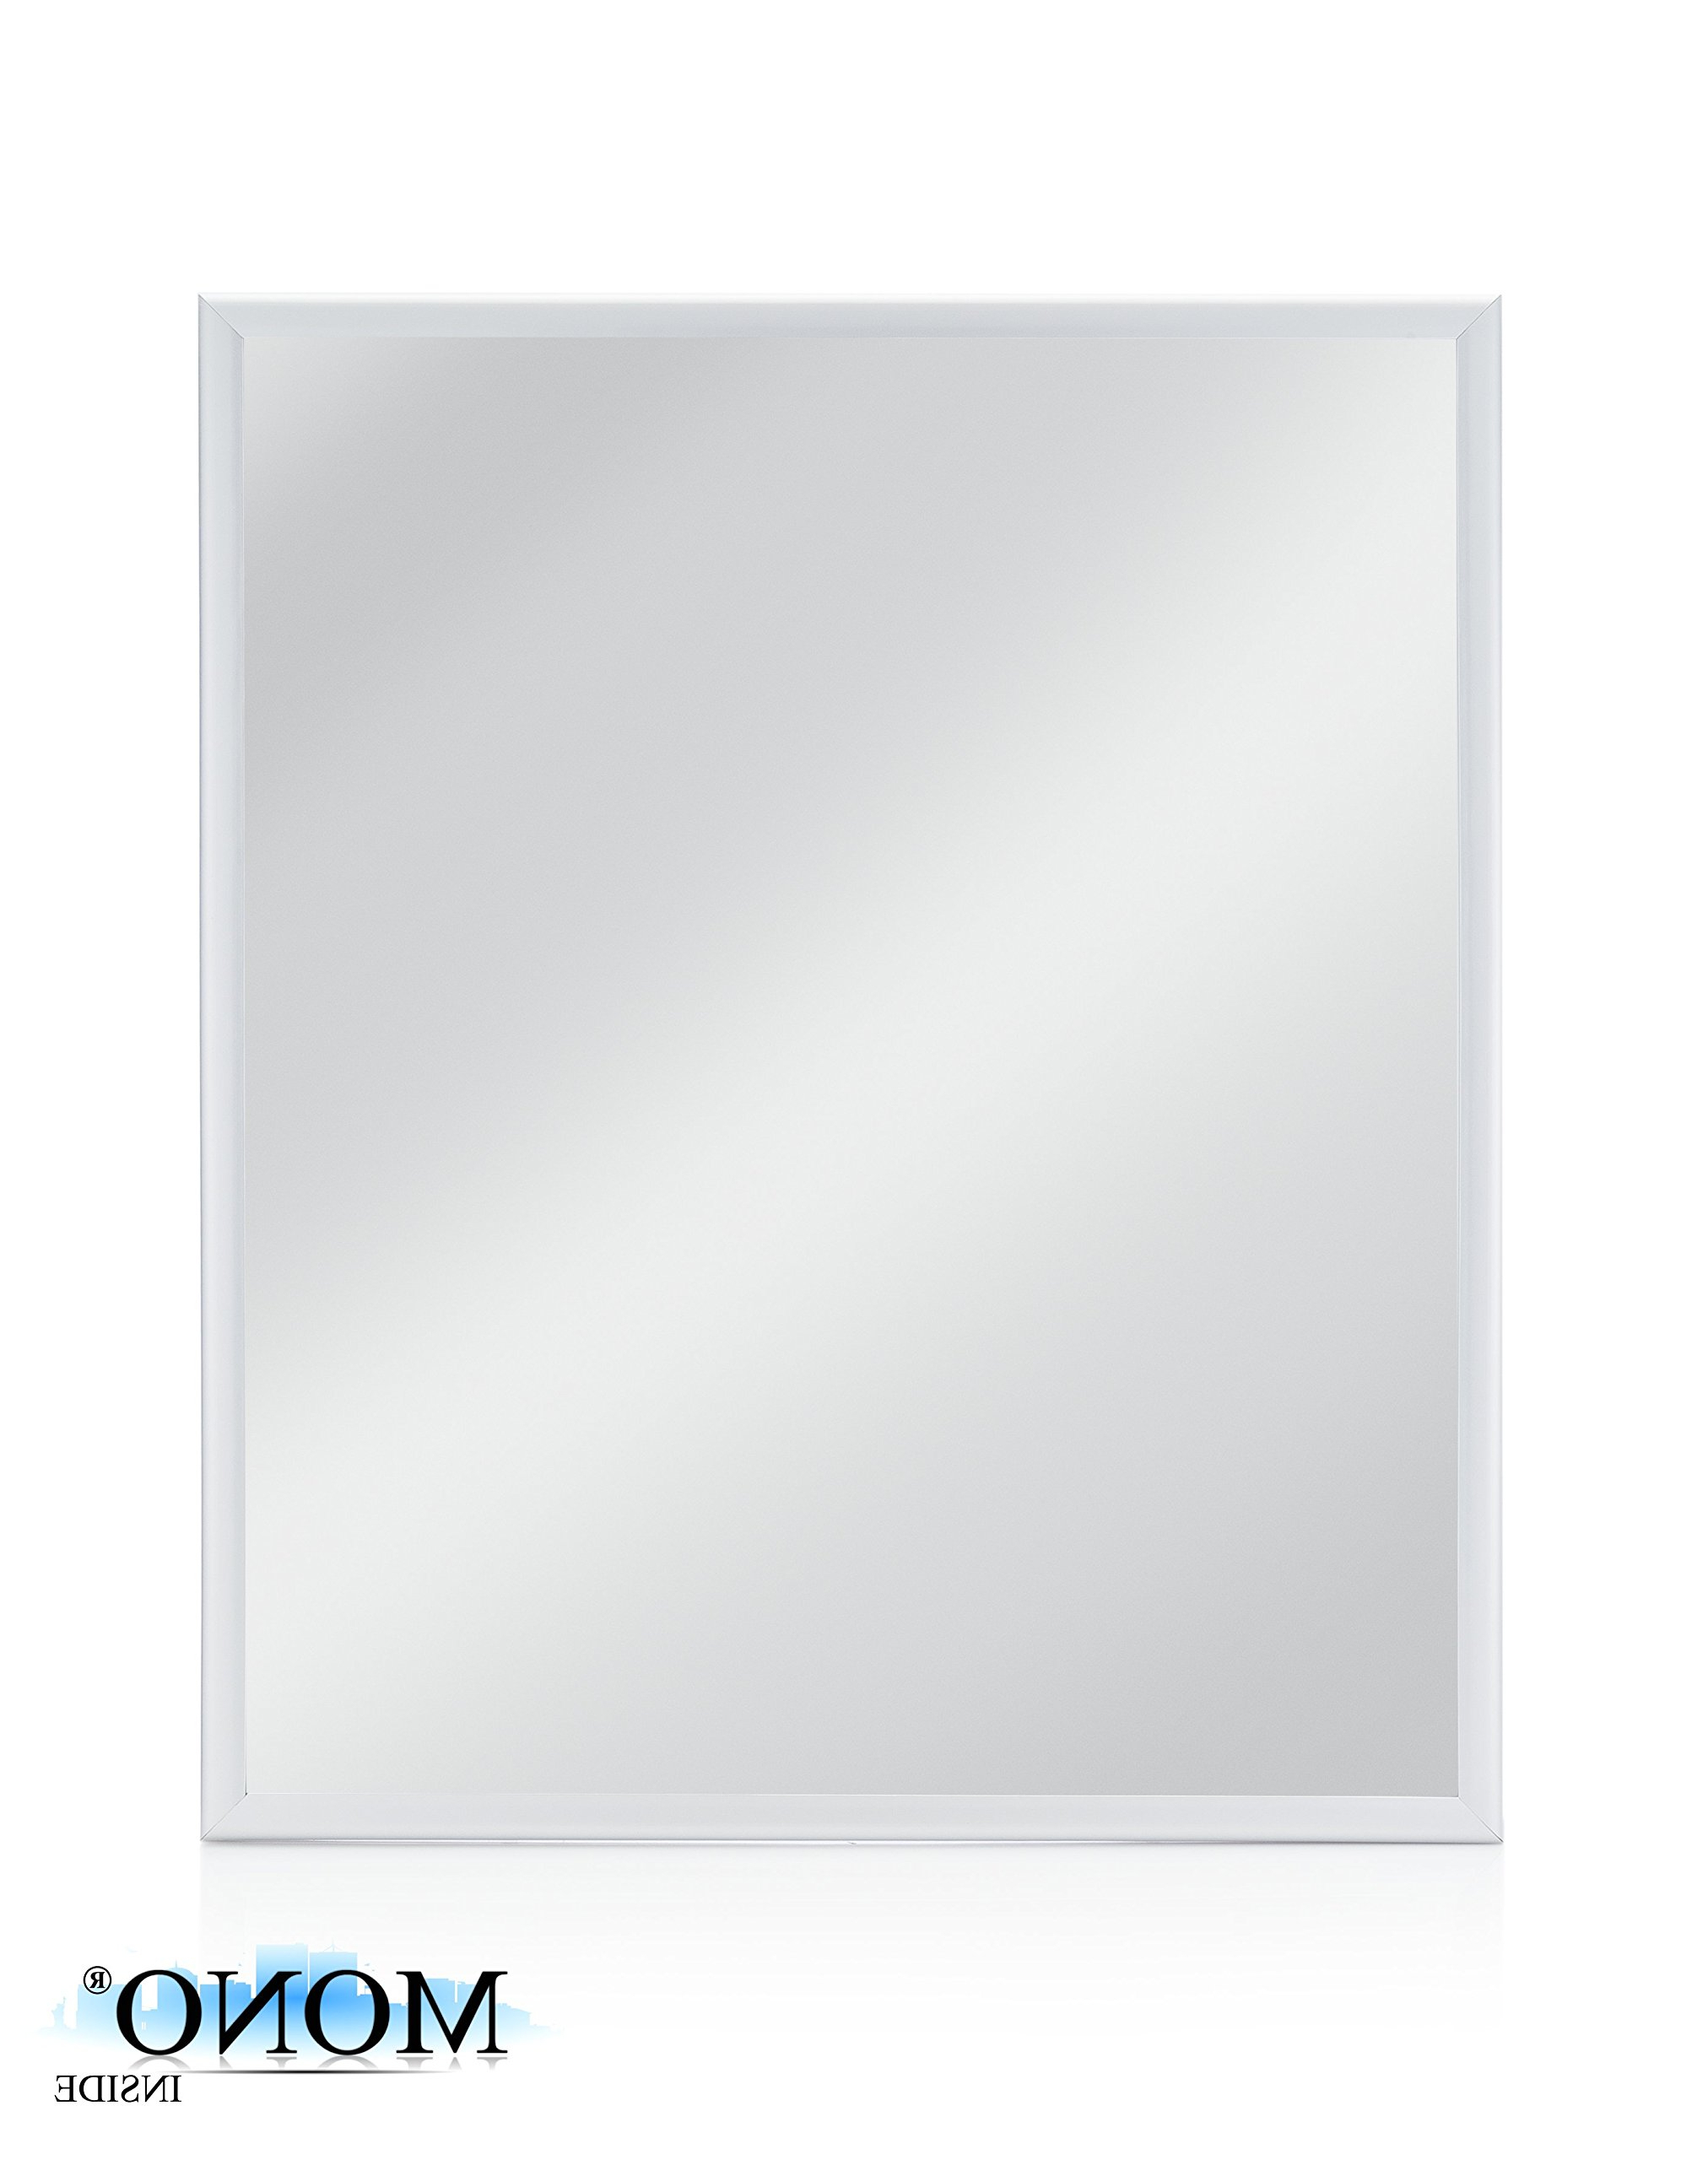 Current Cheap Large Plastic Wall Mirror, Find Large Plastic Wall Mirror Inside Plastic Wall Mirrors (View 4 of 20)